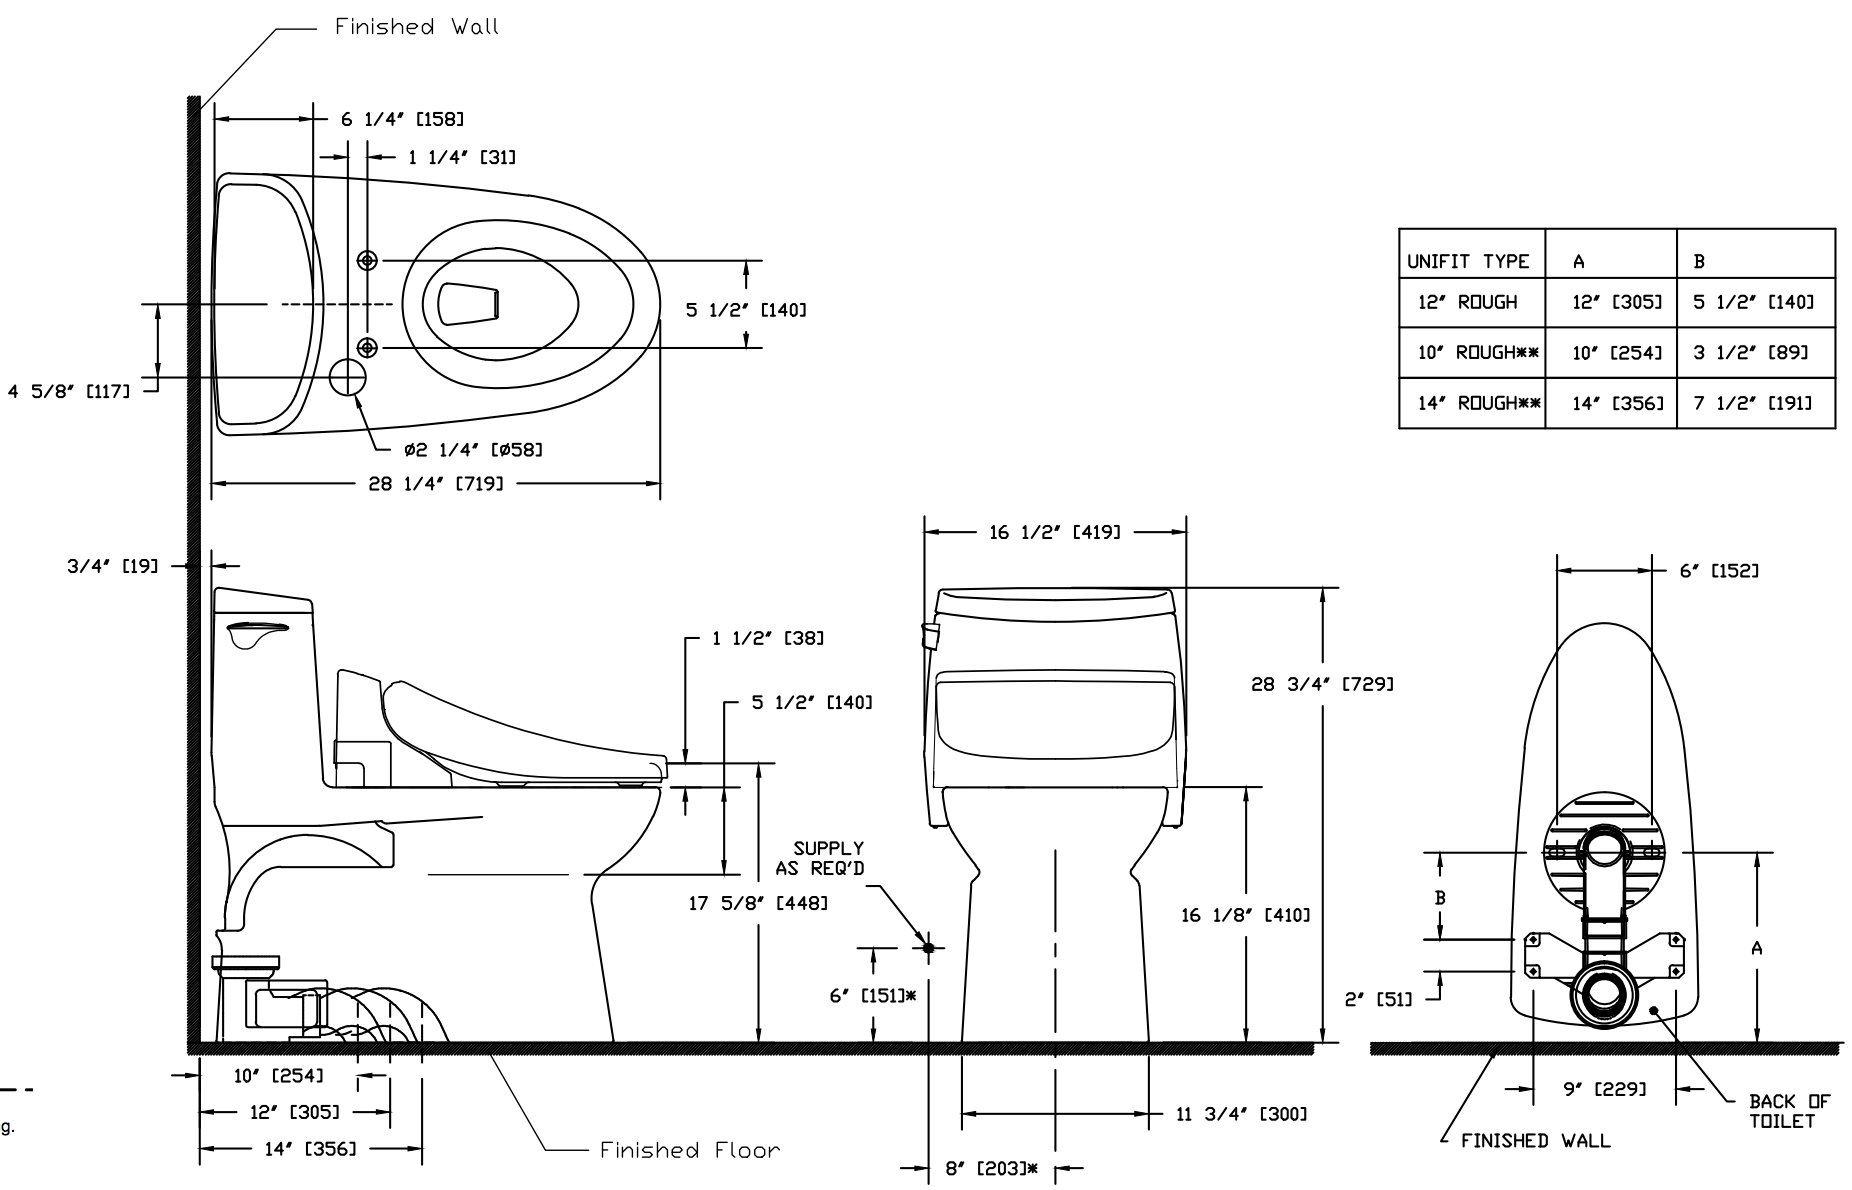 carlyle-ii-1g-washlet-c200-one-piece-toilet-1.0-gpf-diagram-1.png